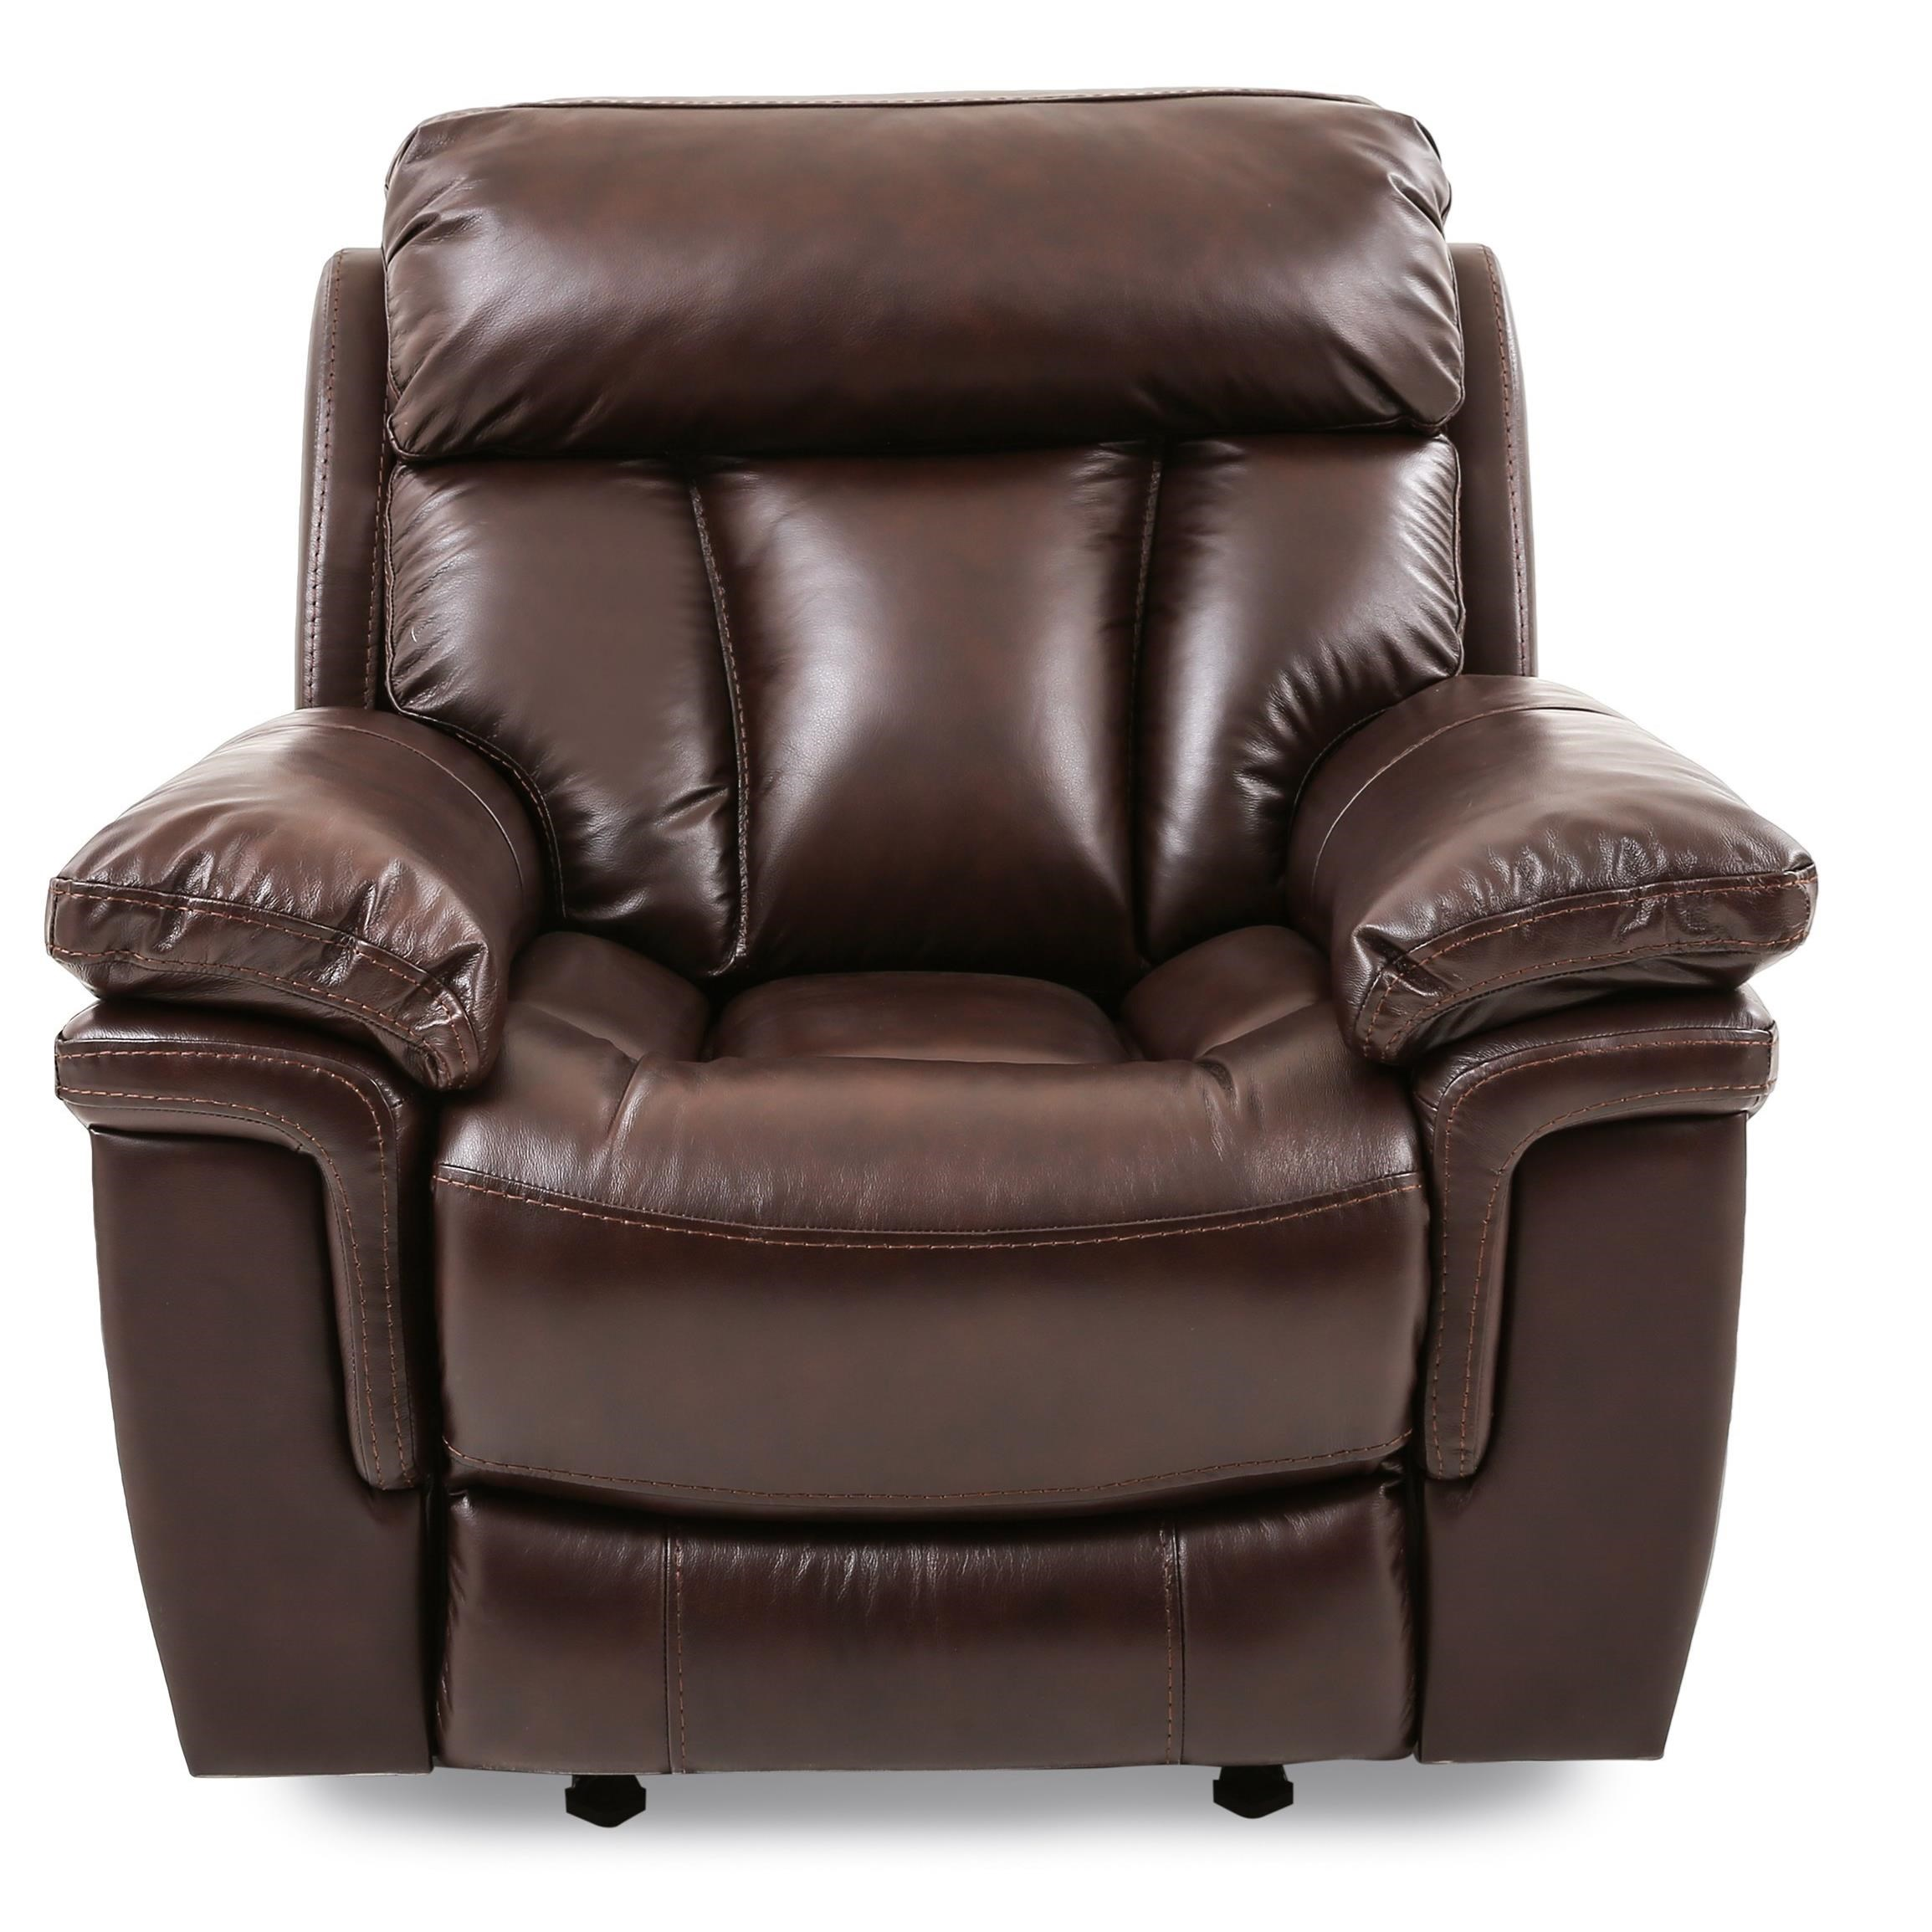 Bryant POWER HD/FT LEATHER RECLINER at Walker's Furniture